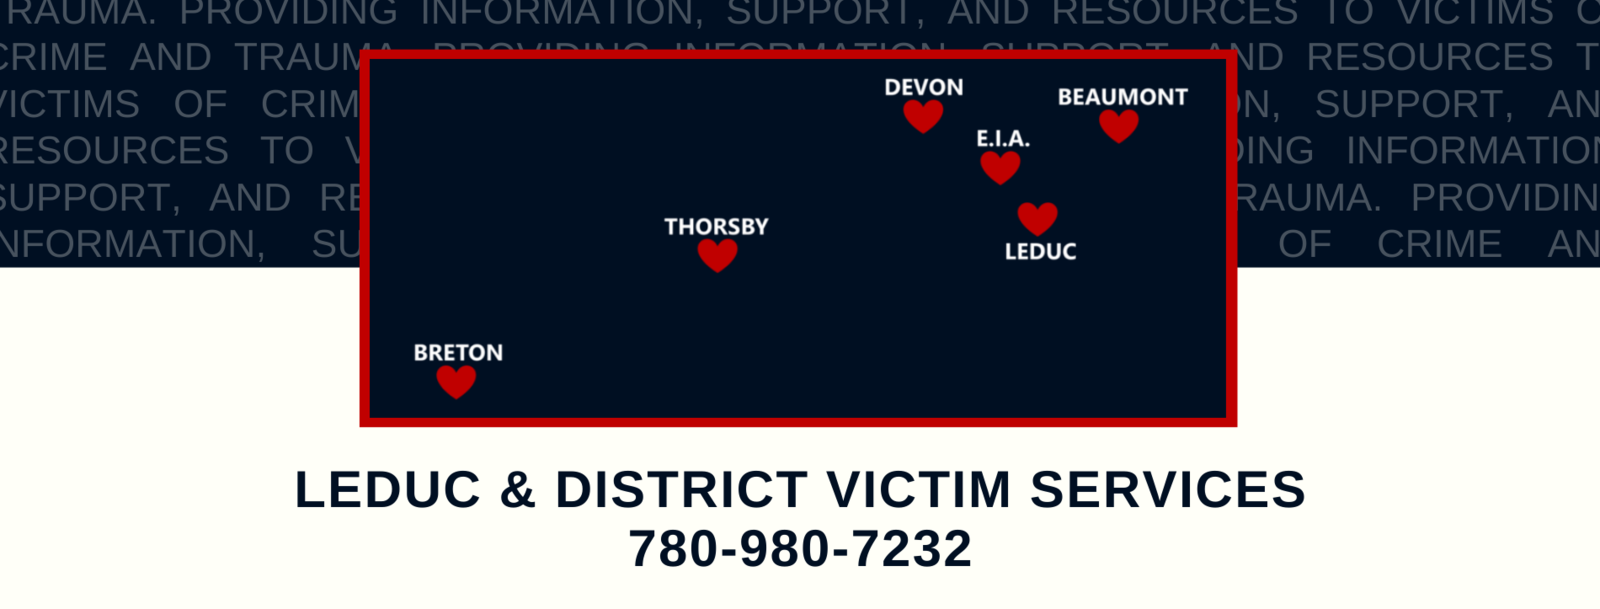 Call Leduc Victim Services if you need help, support or resources in Leduc, Beaumont, Devon, Breton, Thorsby, or Leduc County.